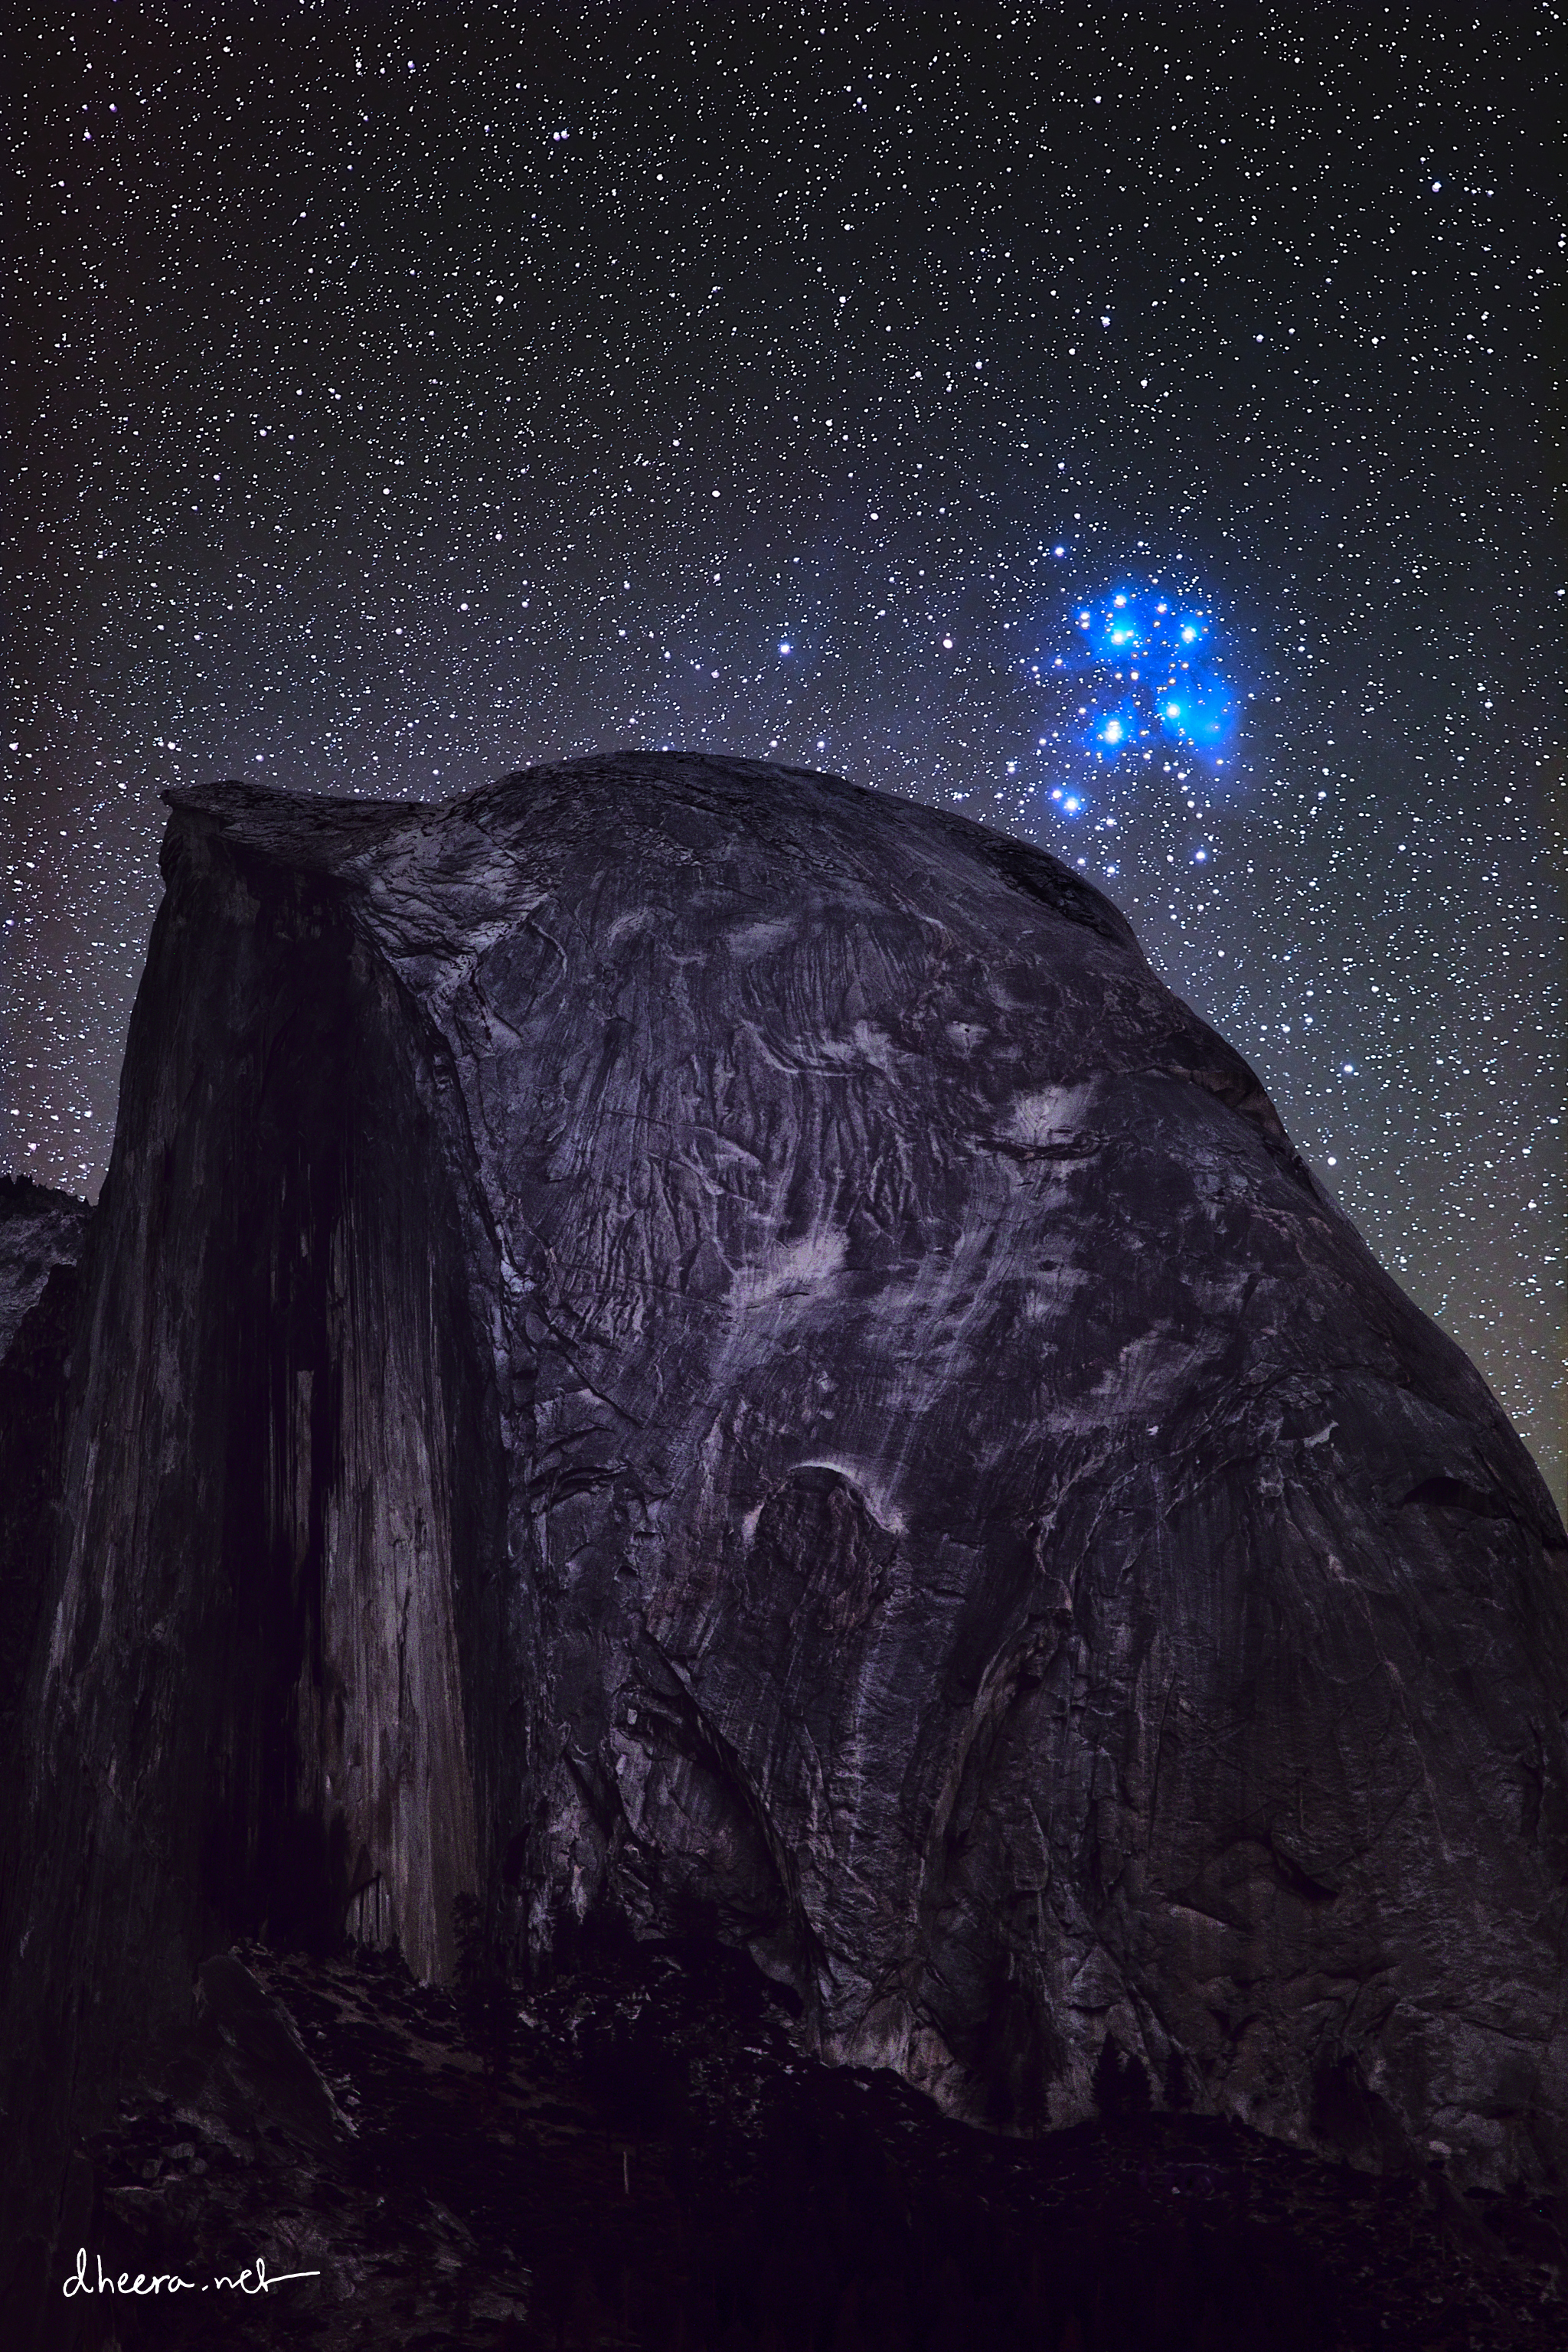 Pleiades star cluster rising over Half Dome, Yosemite National Park